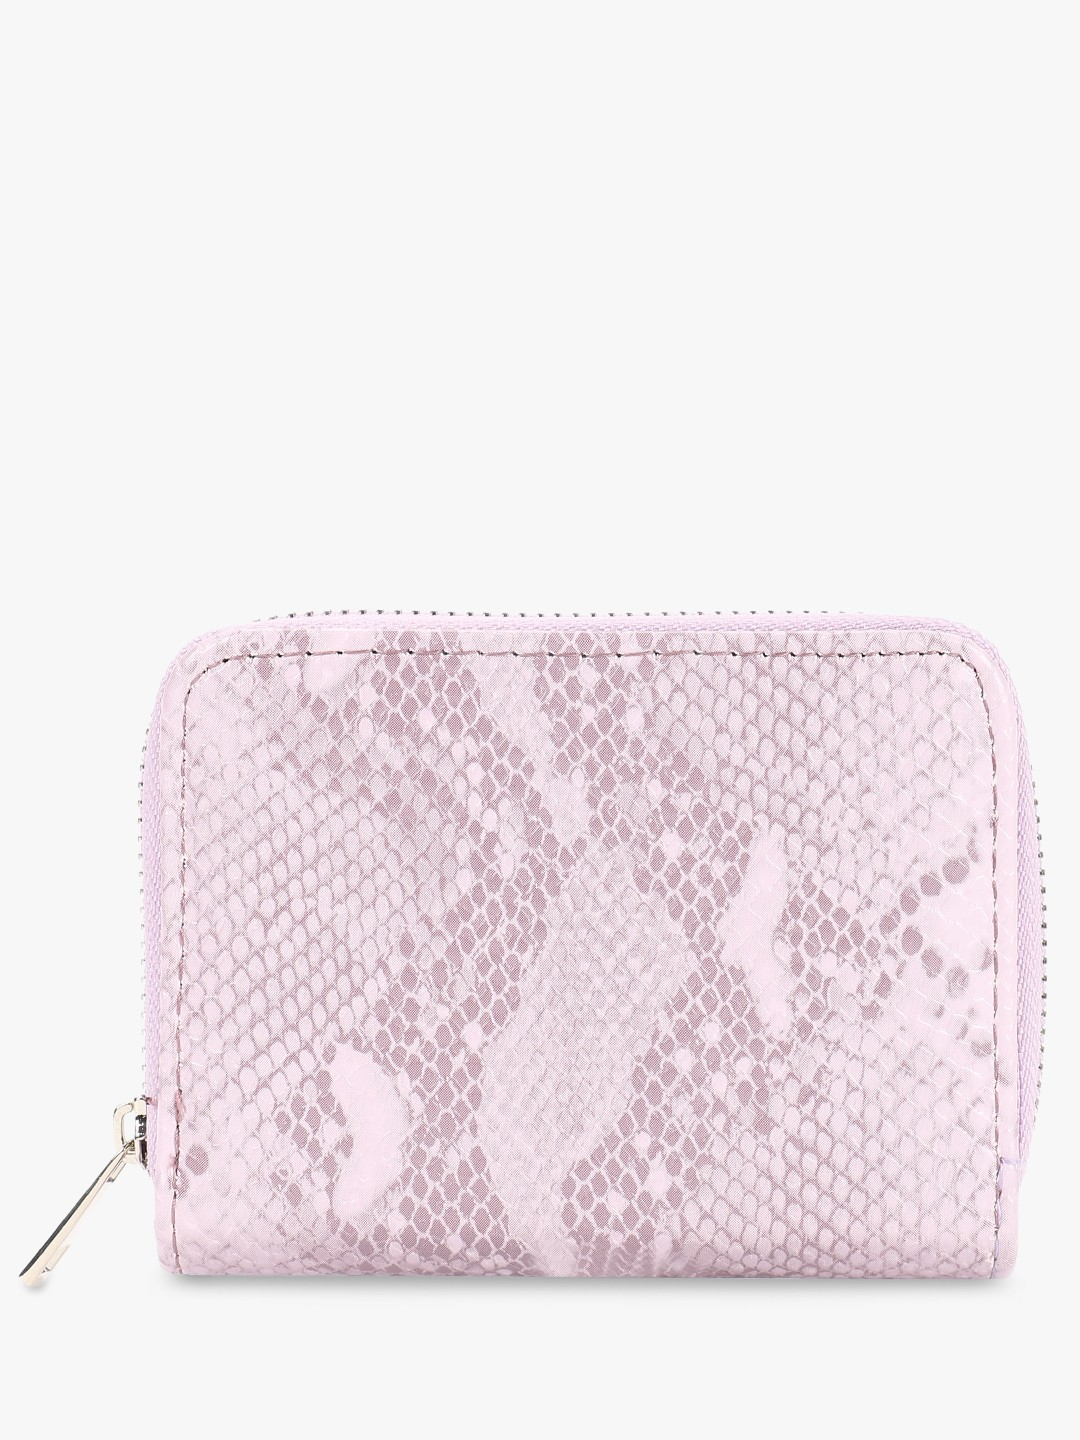 New Look Lilac Snakeskin Texture Cardholder 1